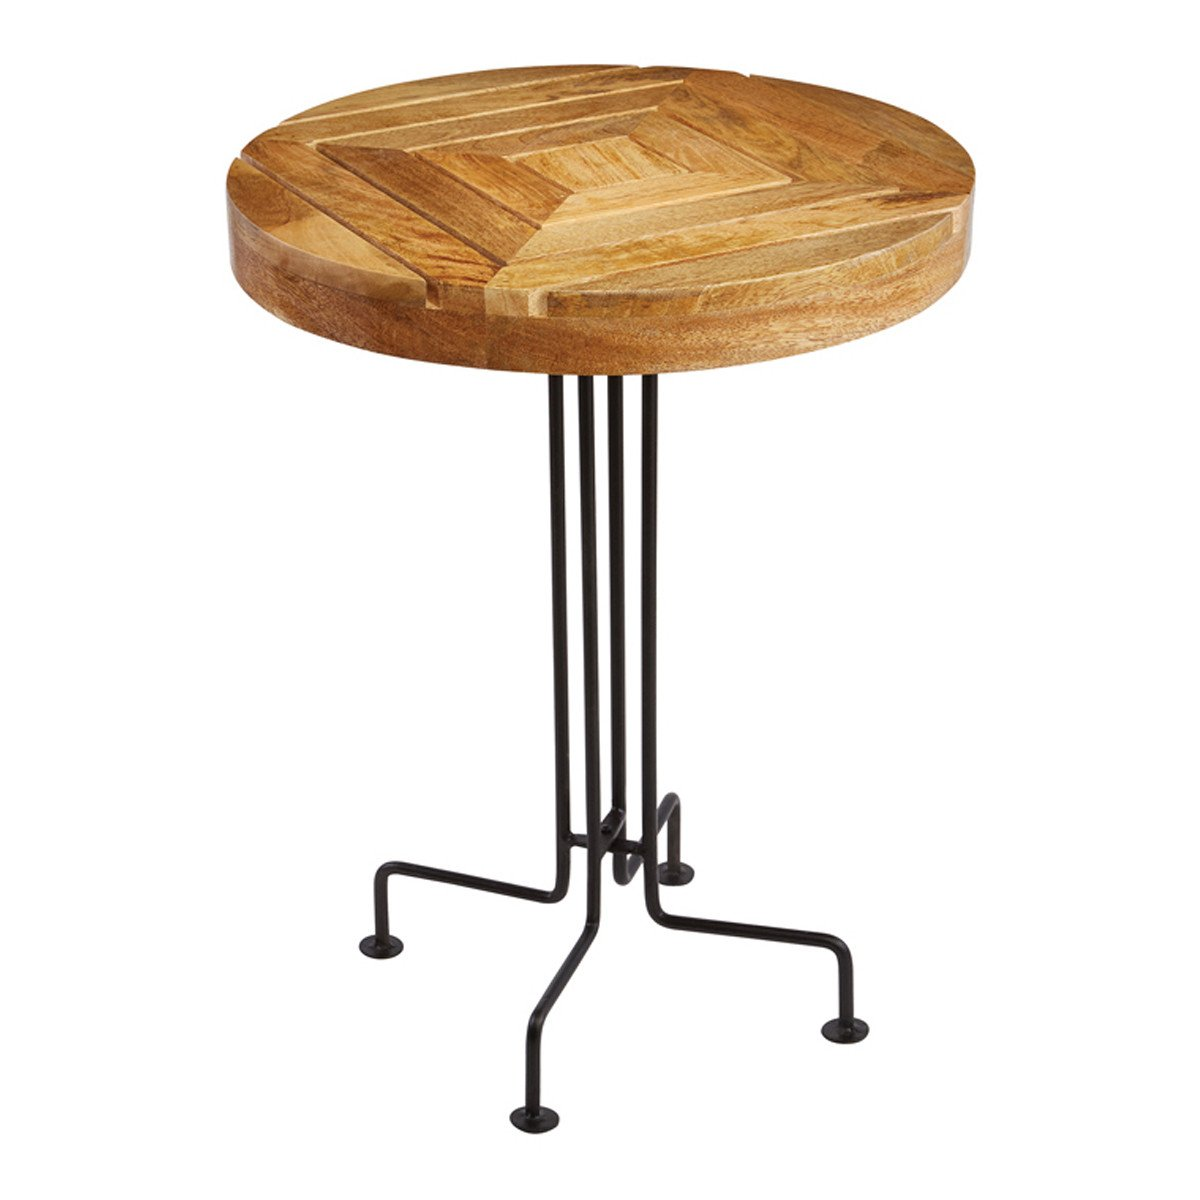 natural mango wood slatted accent table fratantoni lifestyles oak floor threshold mimosa outdoor furniture bunnings antique square home goods tables oblong tablecloth small round